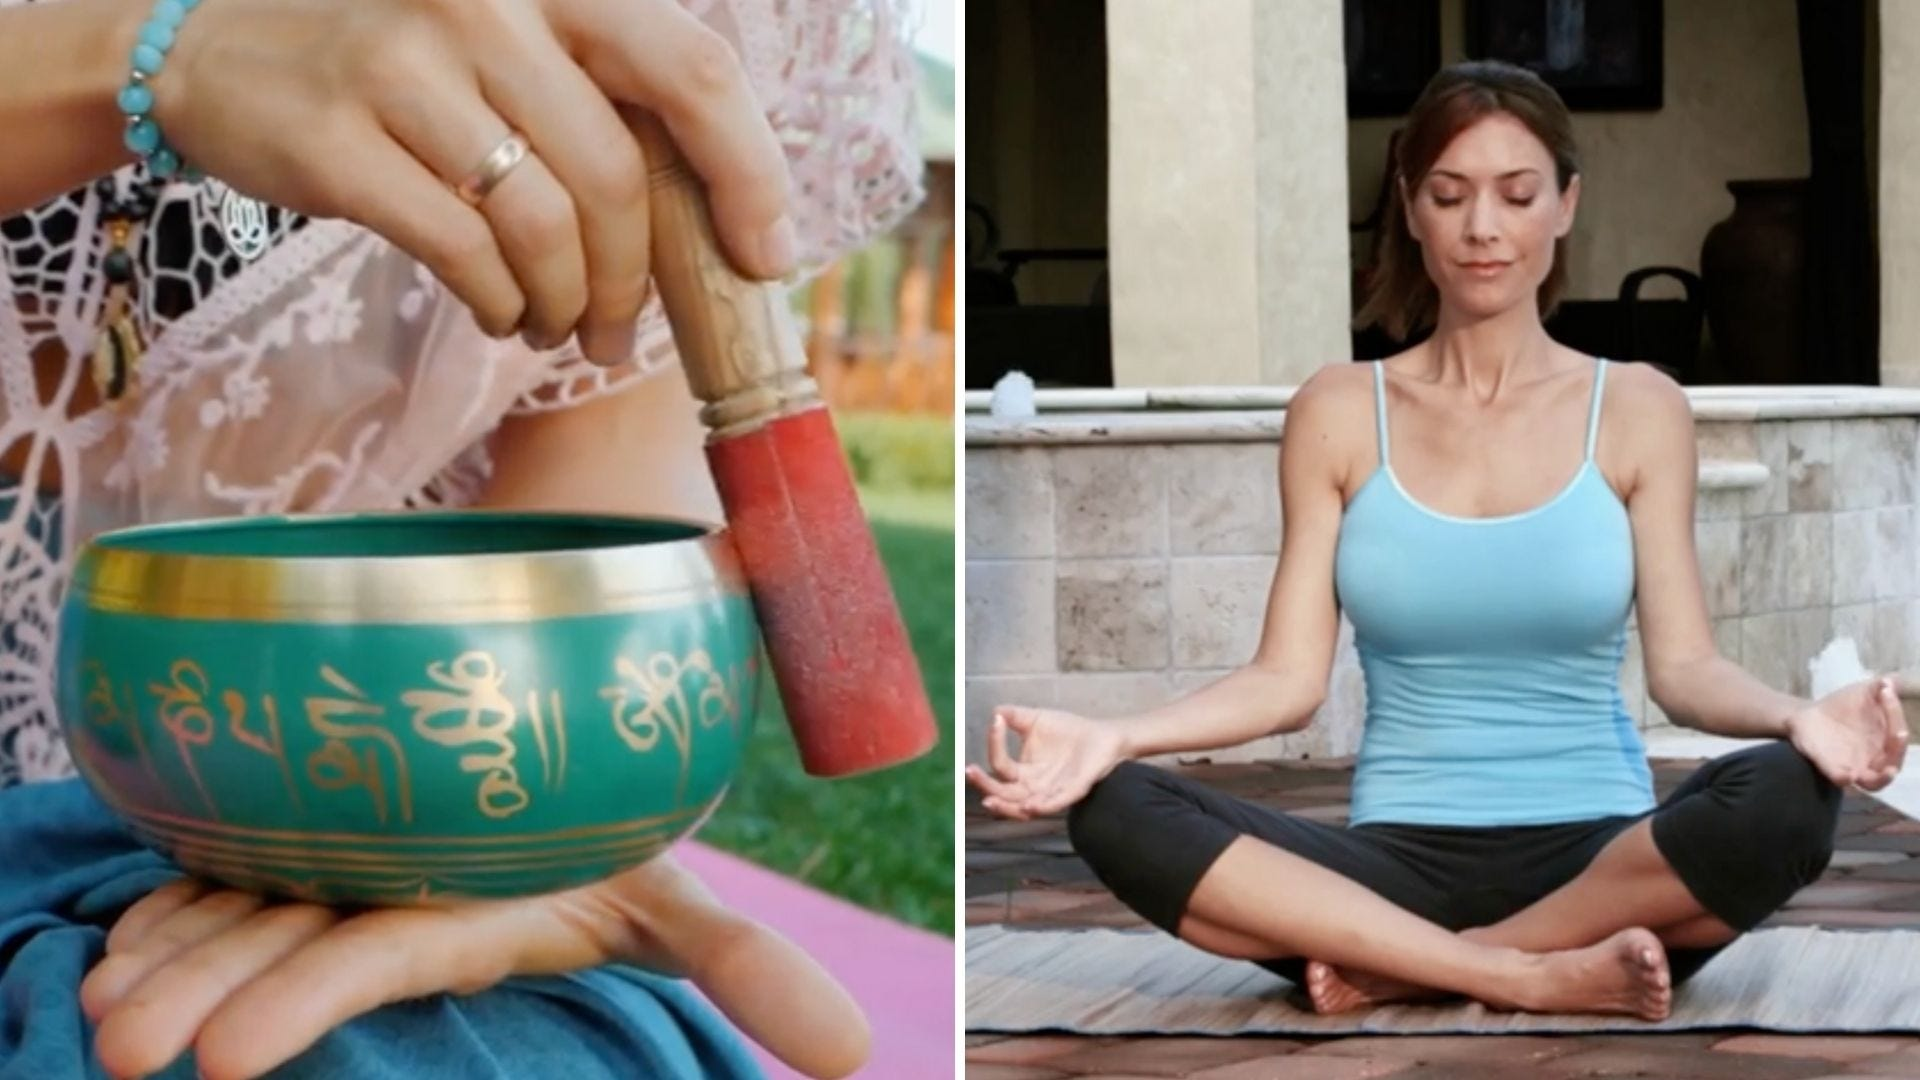 Someone holds a rod to a decorated bowl and someone meditates